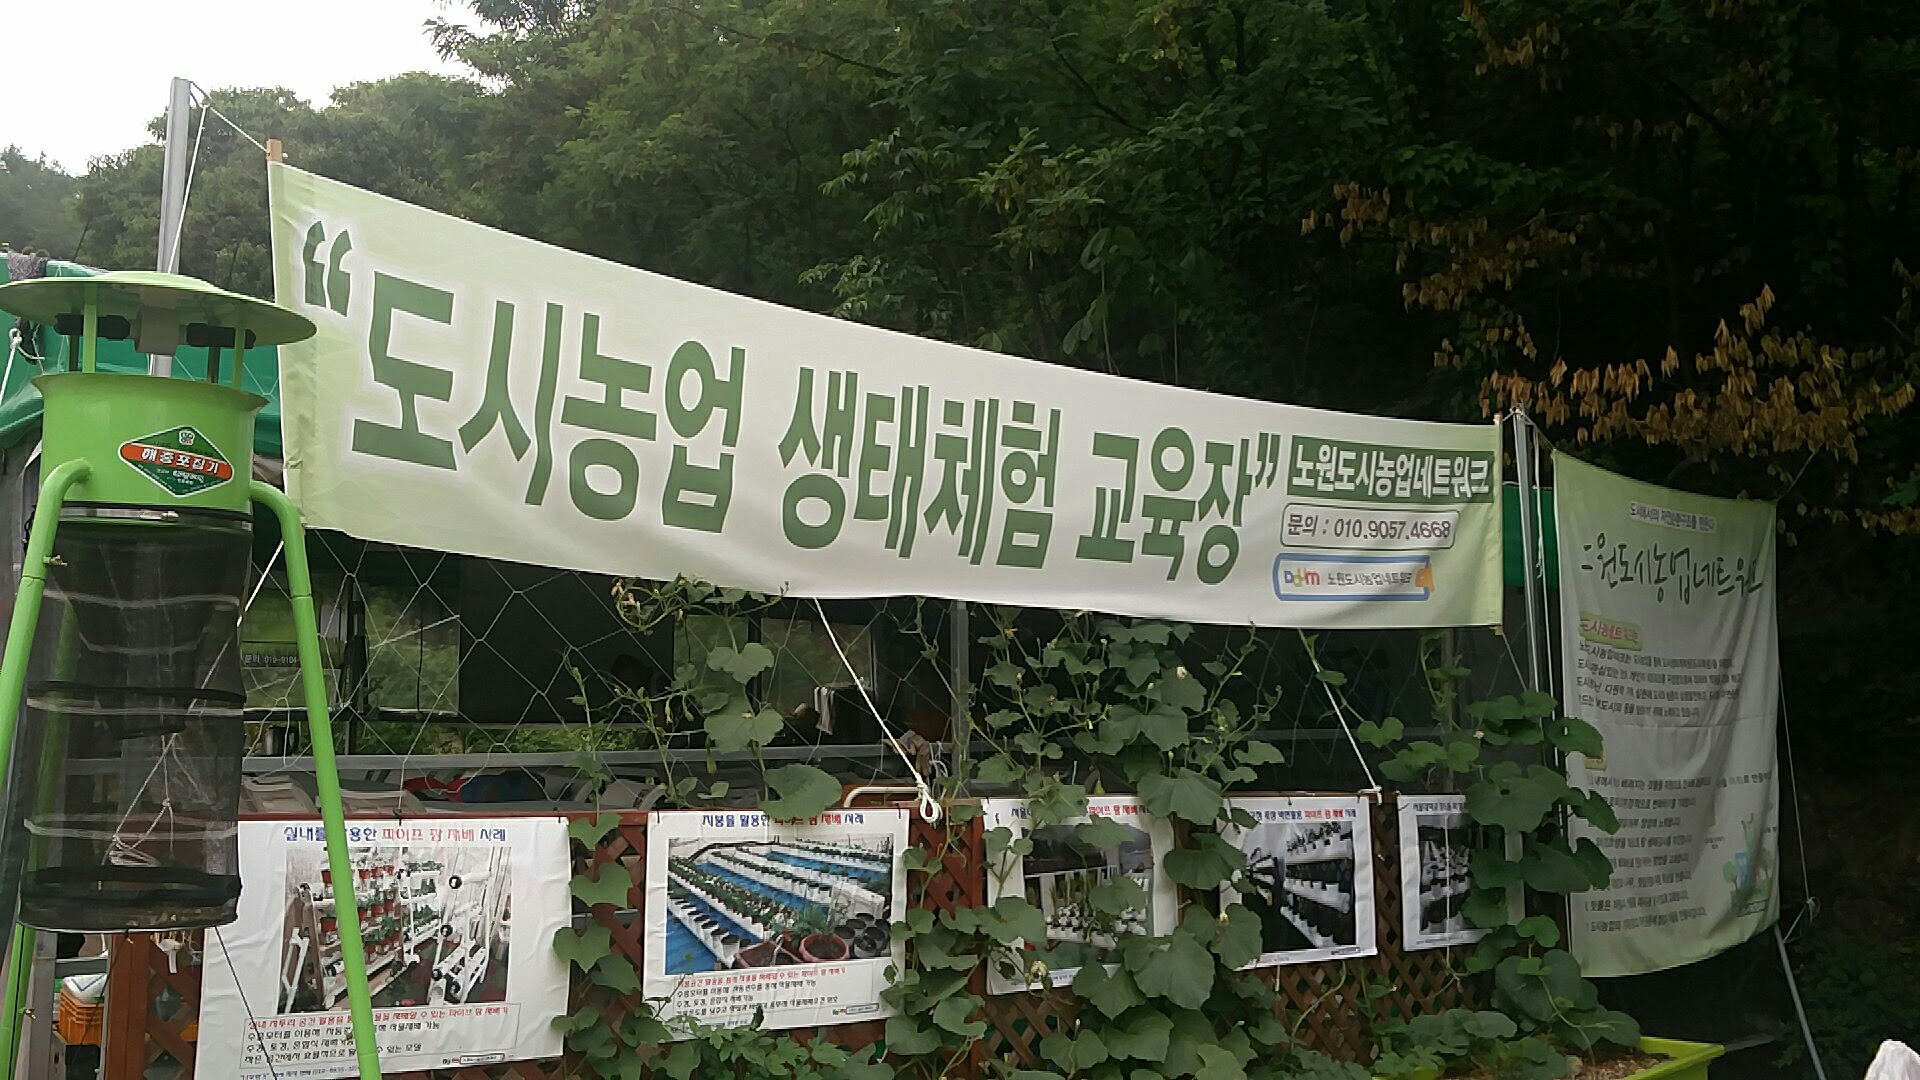 천수텃밭-'도시농업 (school of urban agriculture)'